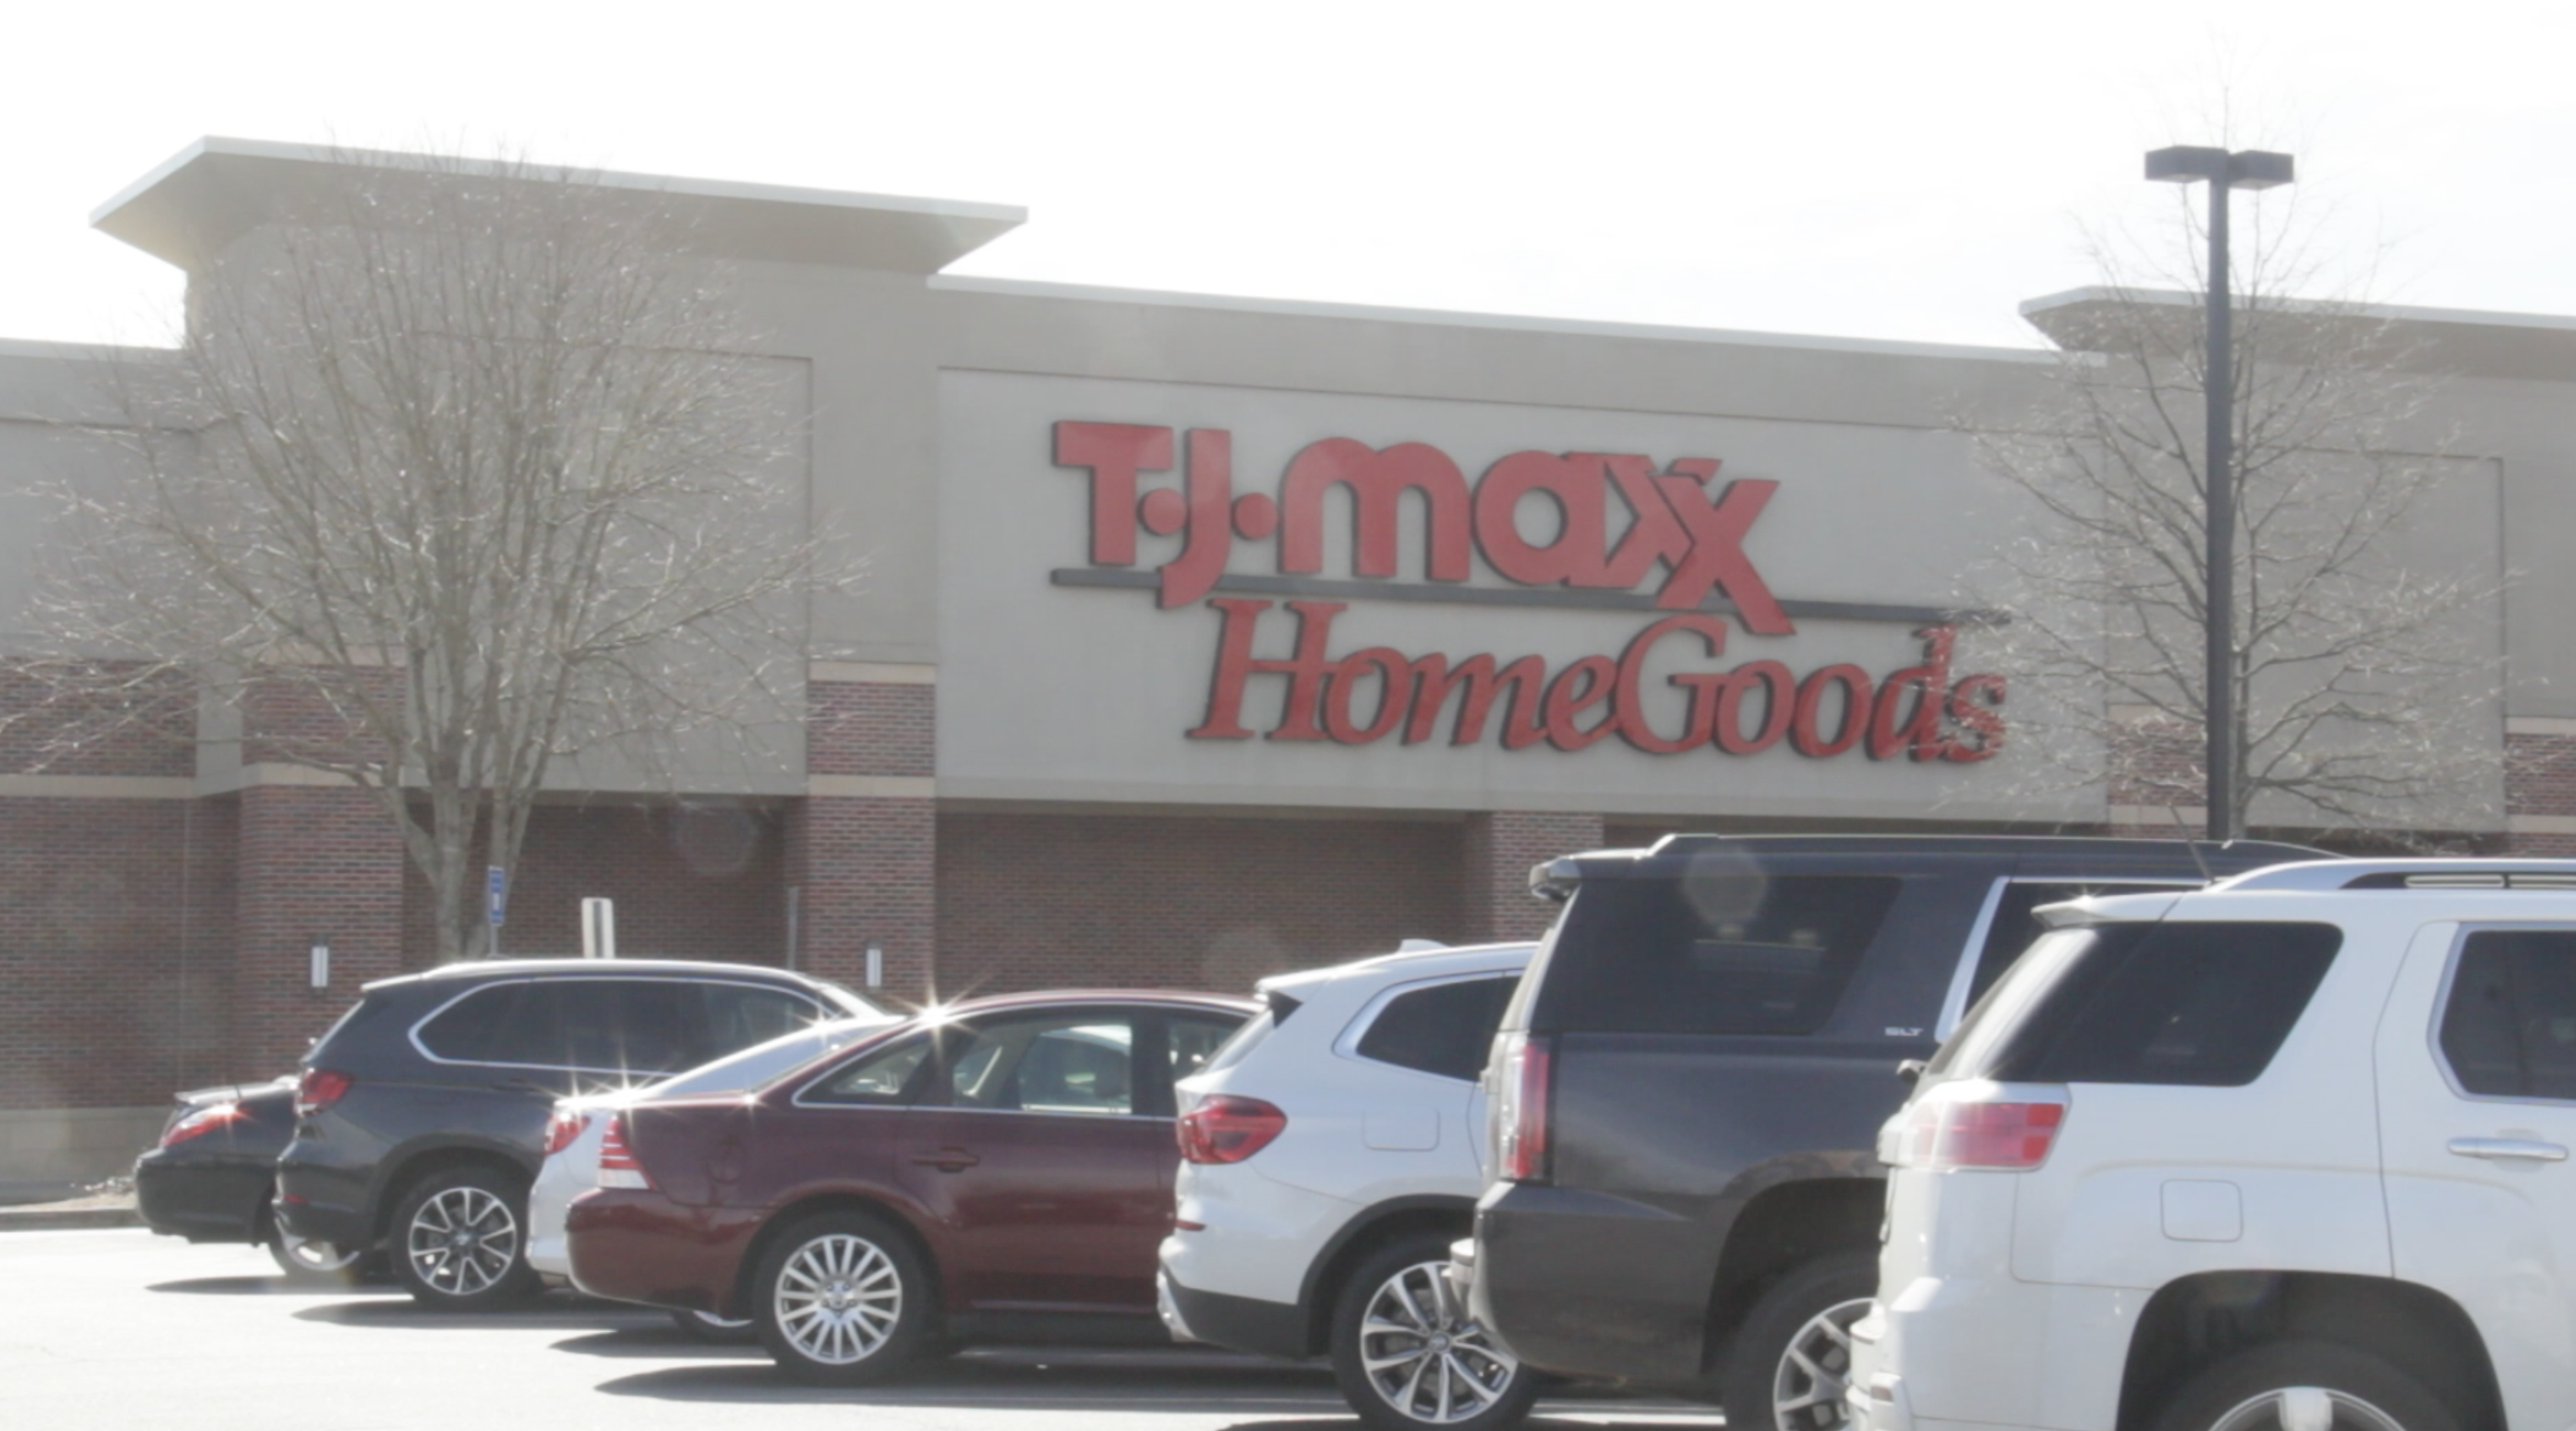 UGA Student Followed by Three Men in TJ Maxx — Grady Newsource